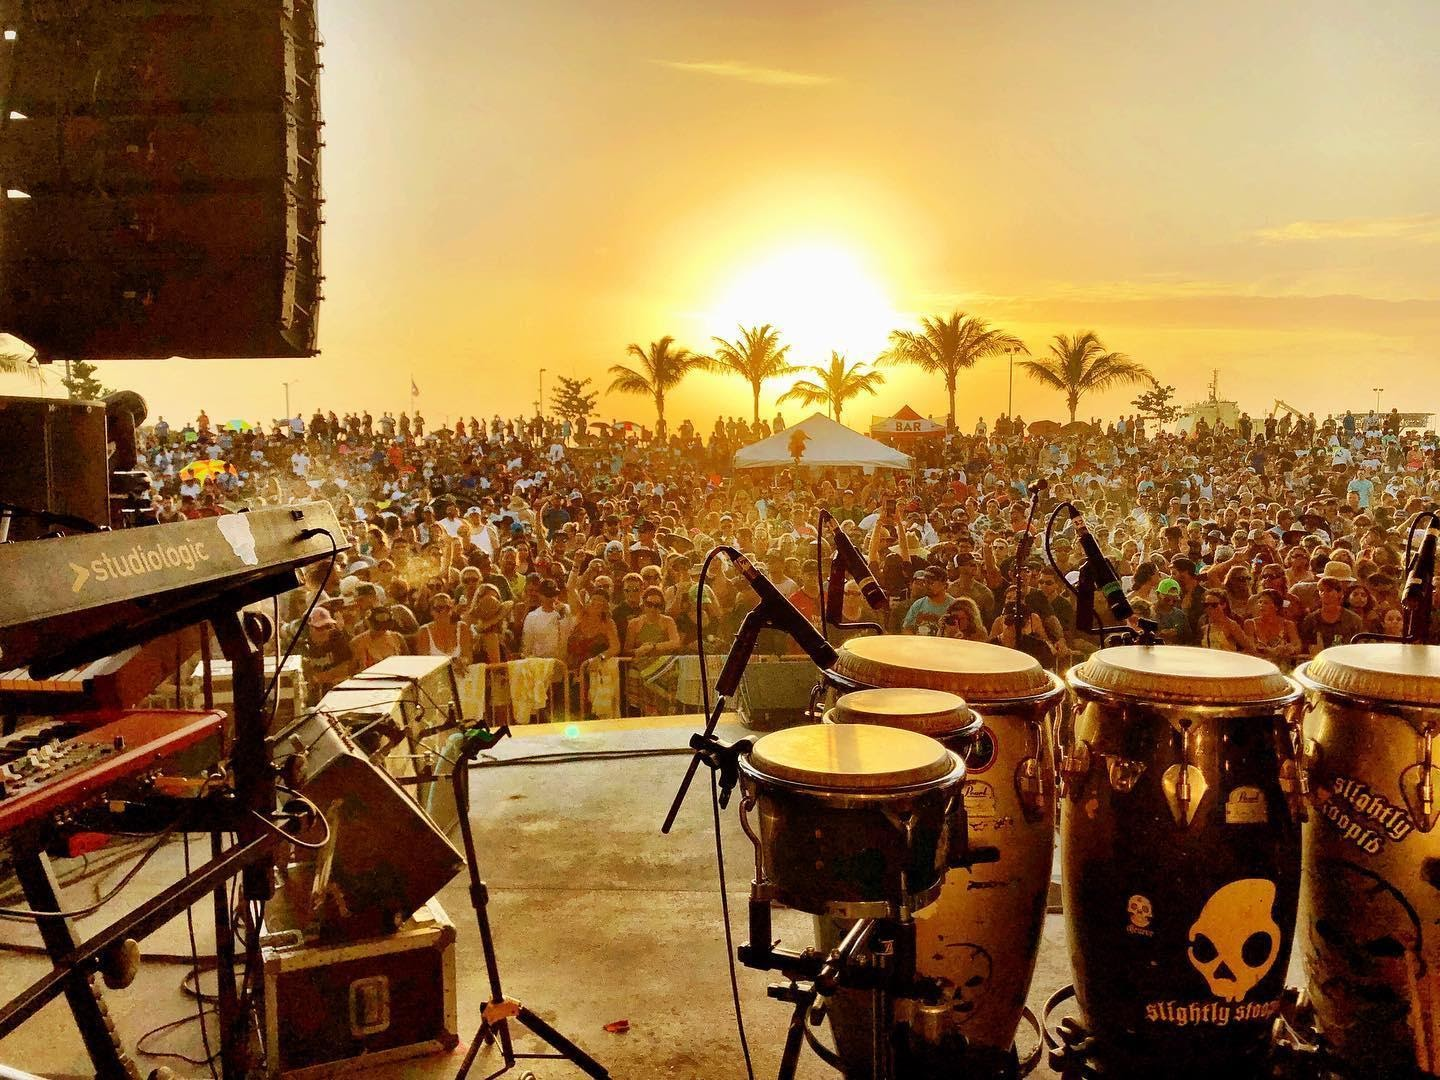 View of an outdoor concert packed with people at sunset